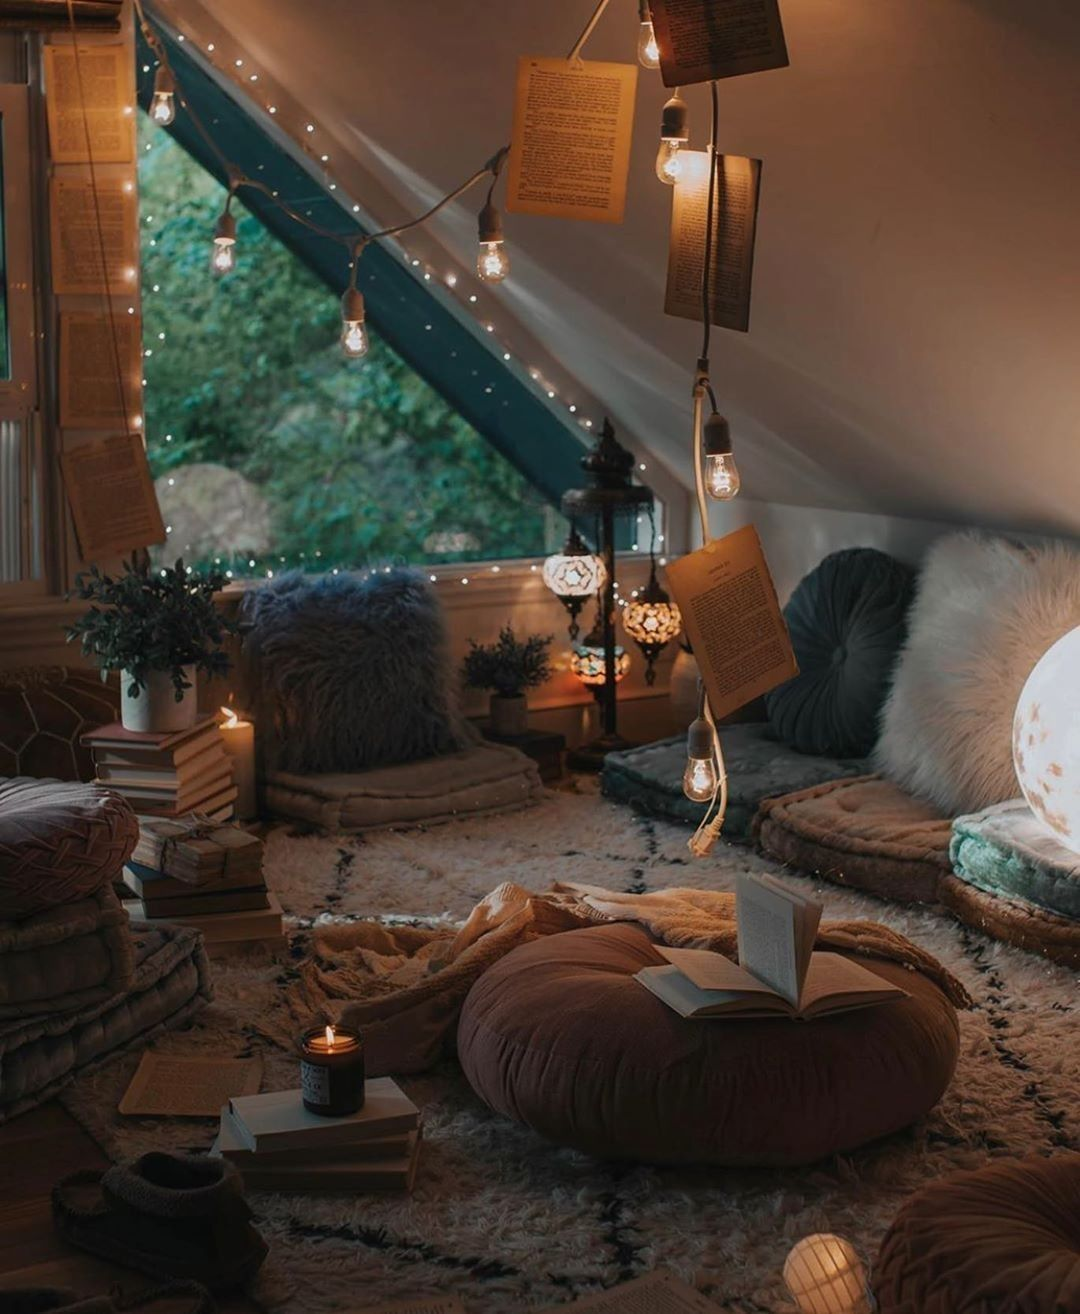 78 Models Very Snug and Practical Decoration Ideas for ...